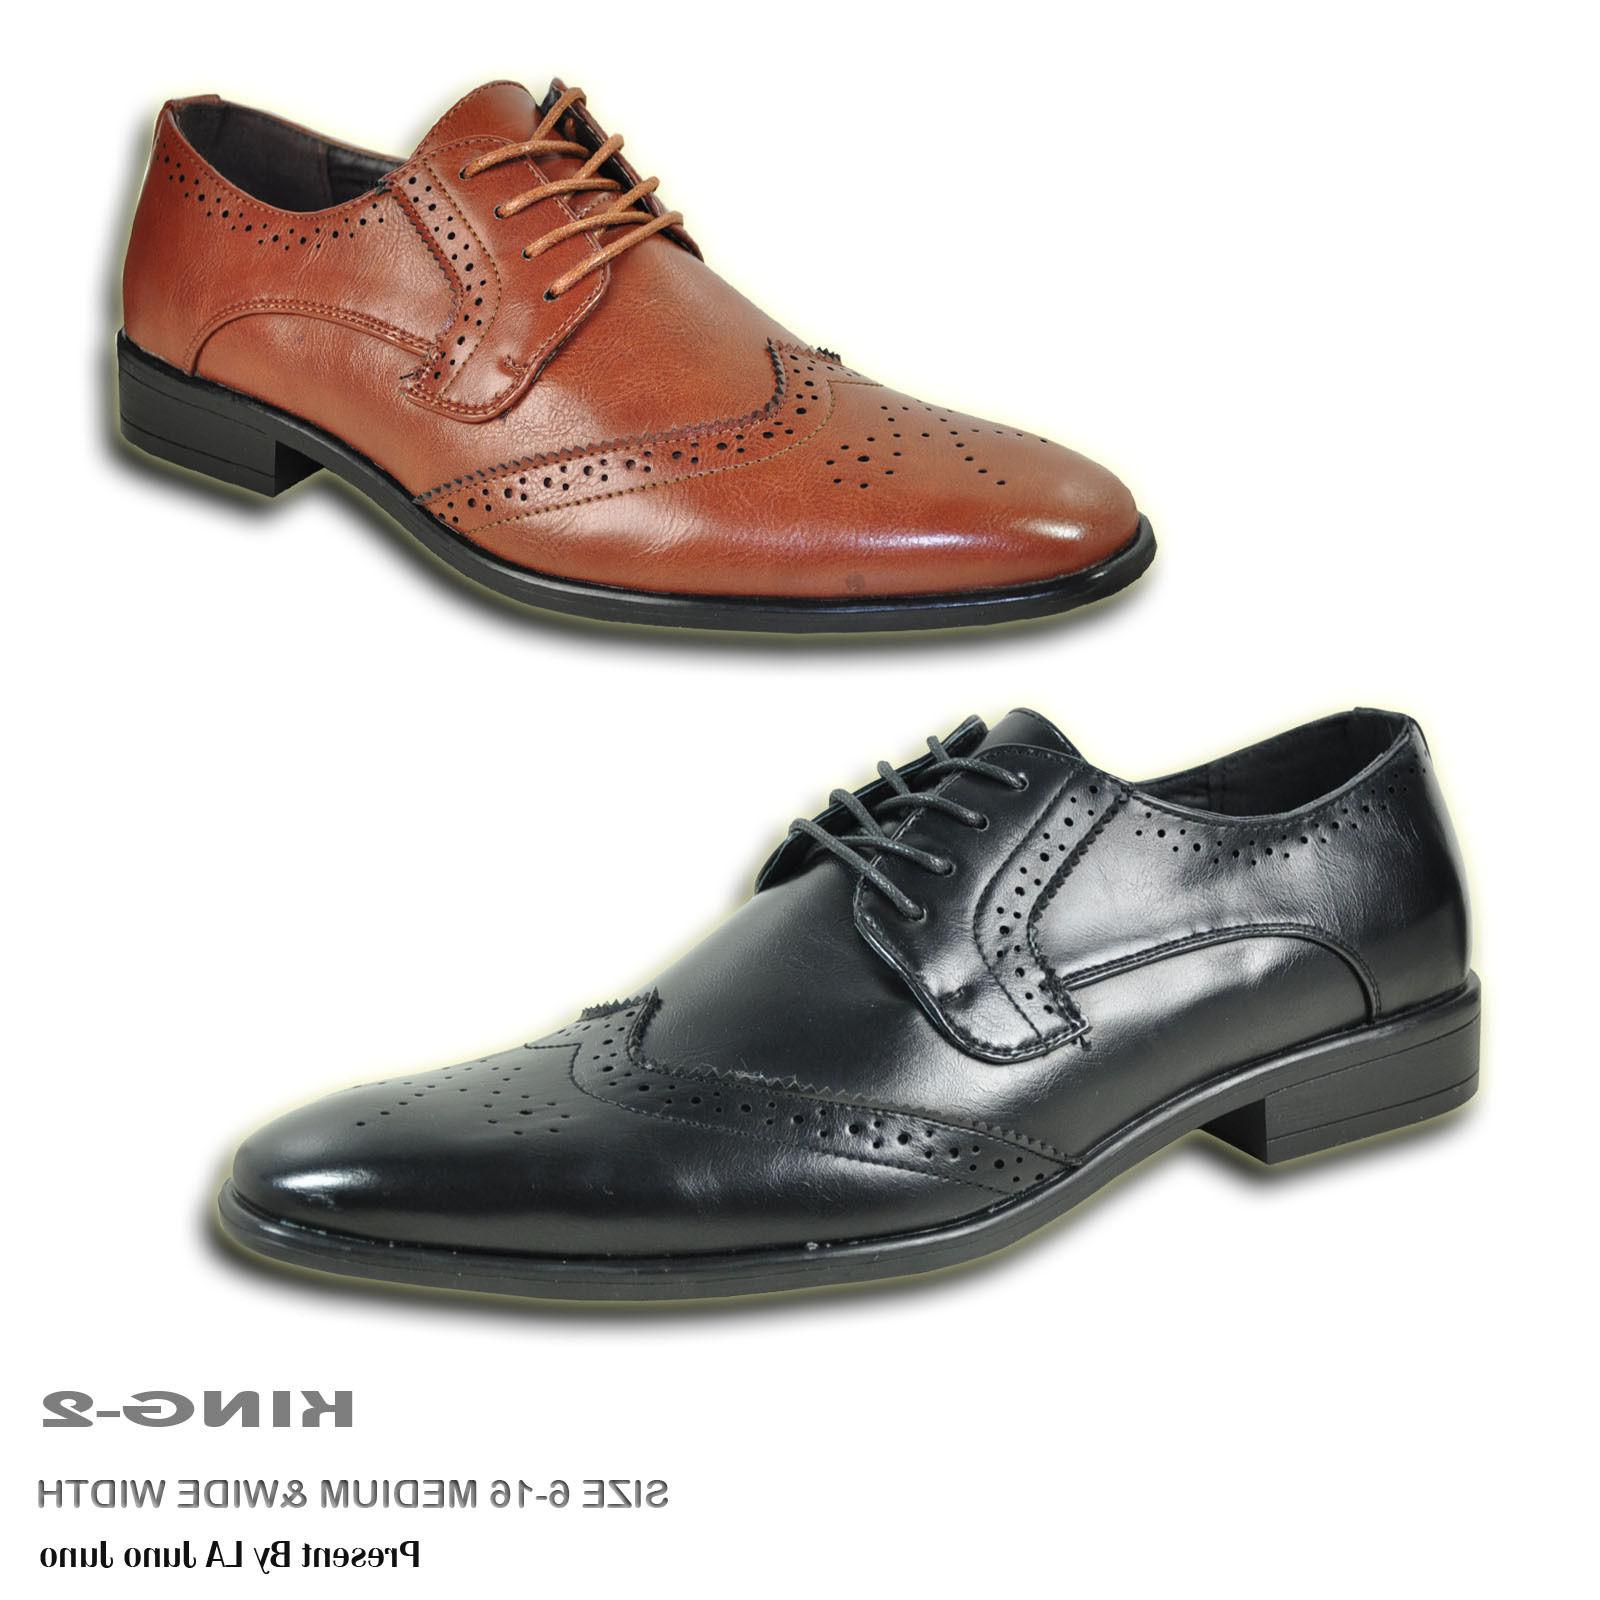 BRAVO Men Dress Shoe KING-2 Classic Oxford with Leather Lini